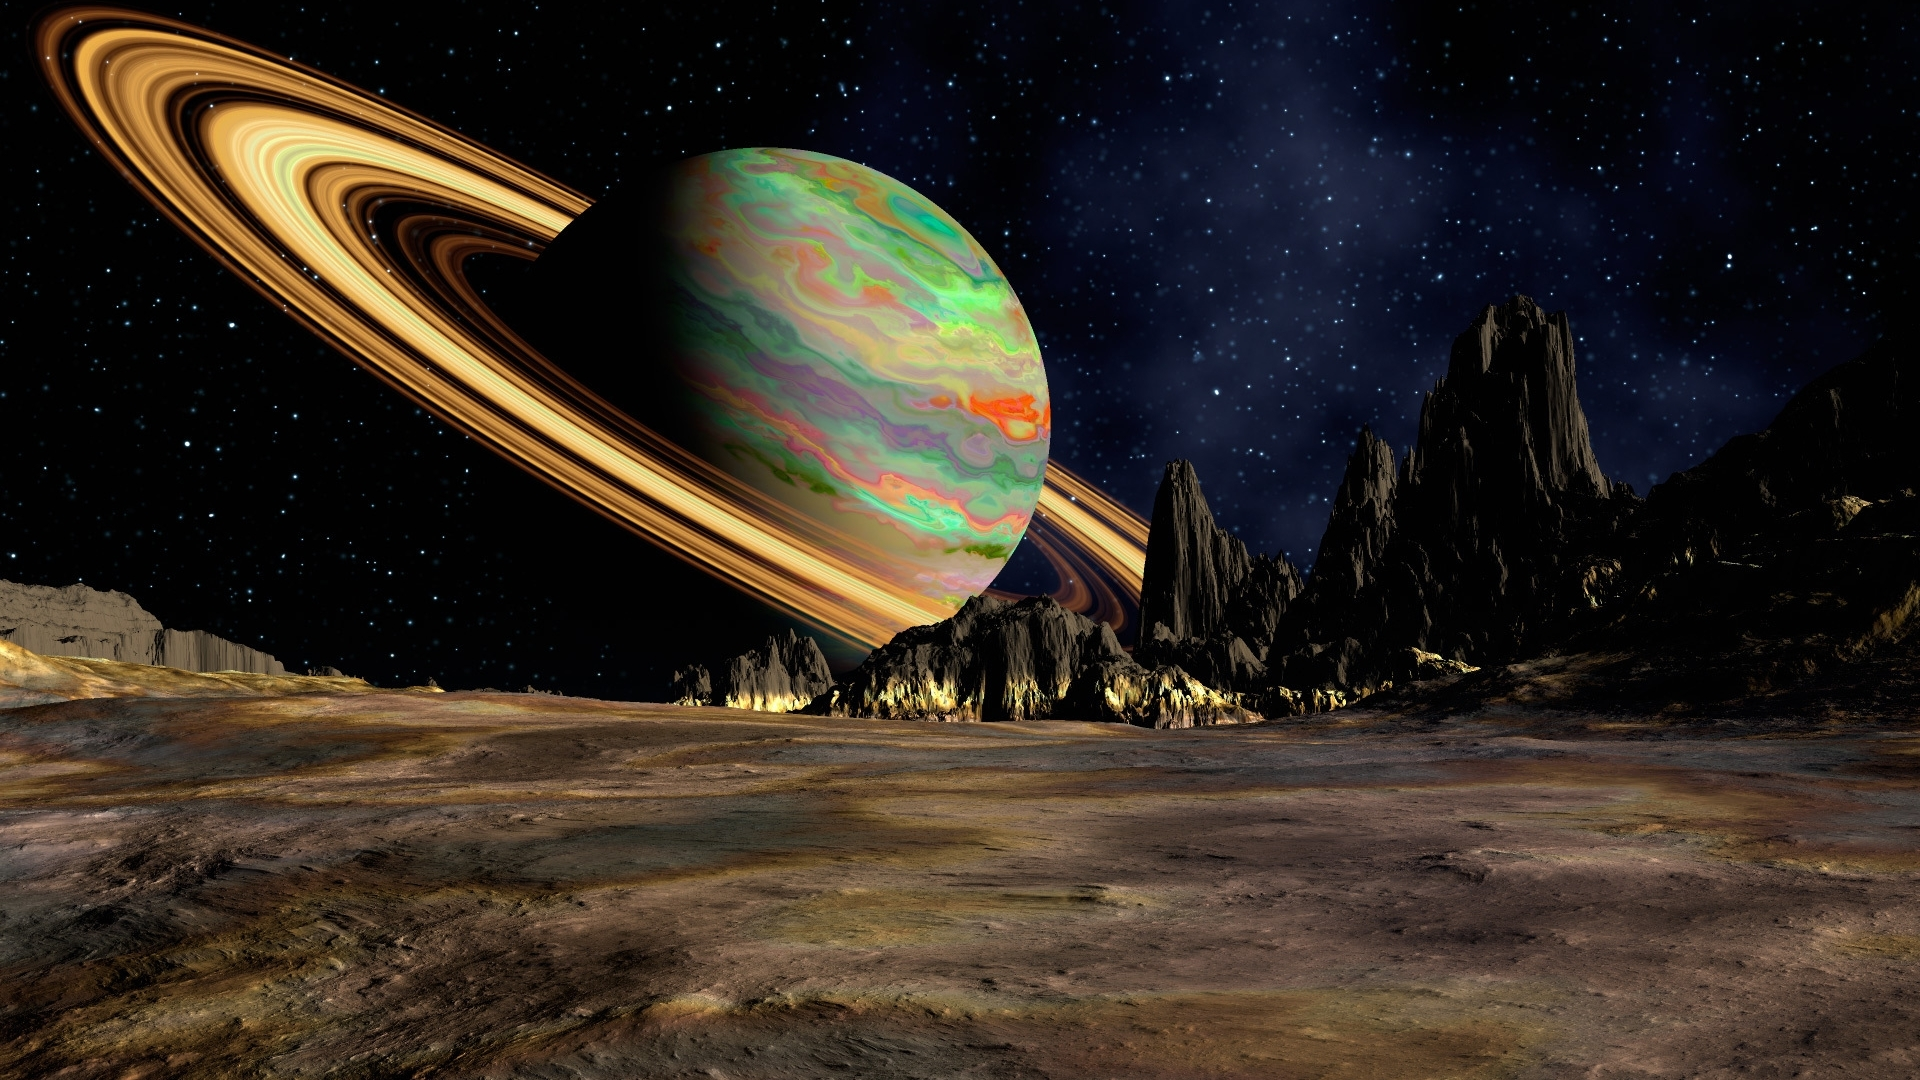 1920x1080 Planet Saturn Space 1080p Laptop Full Hd